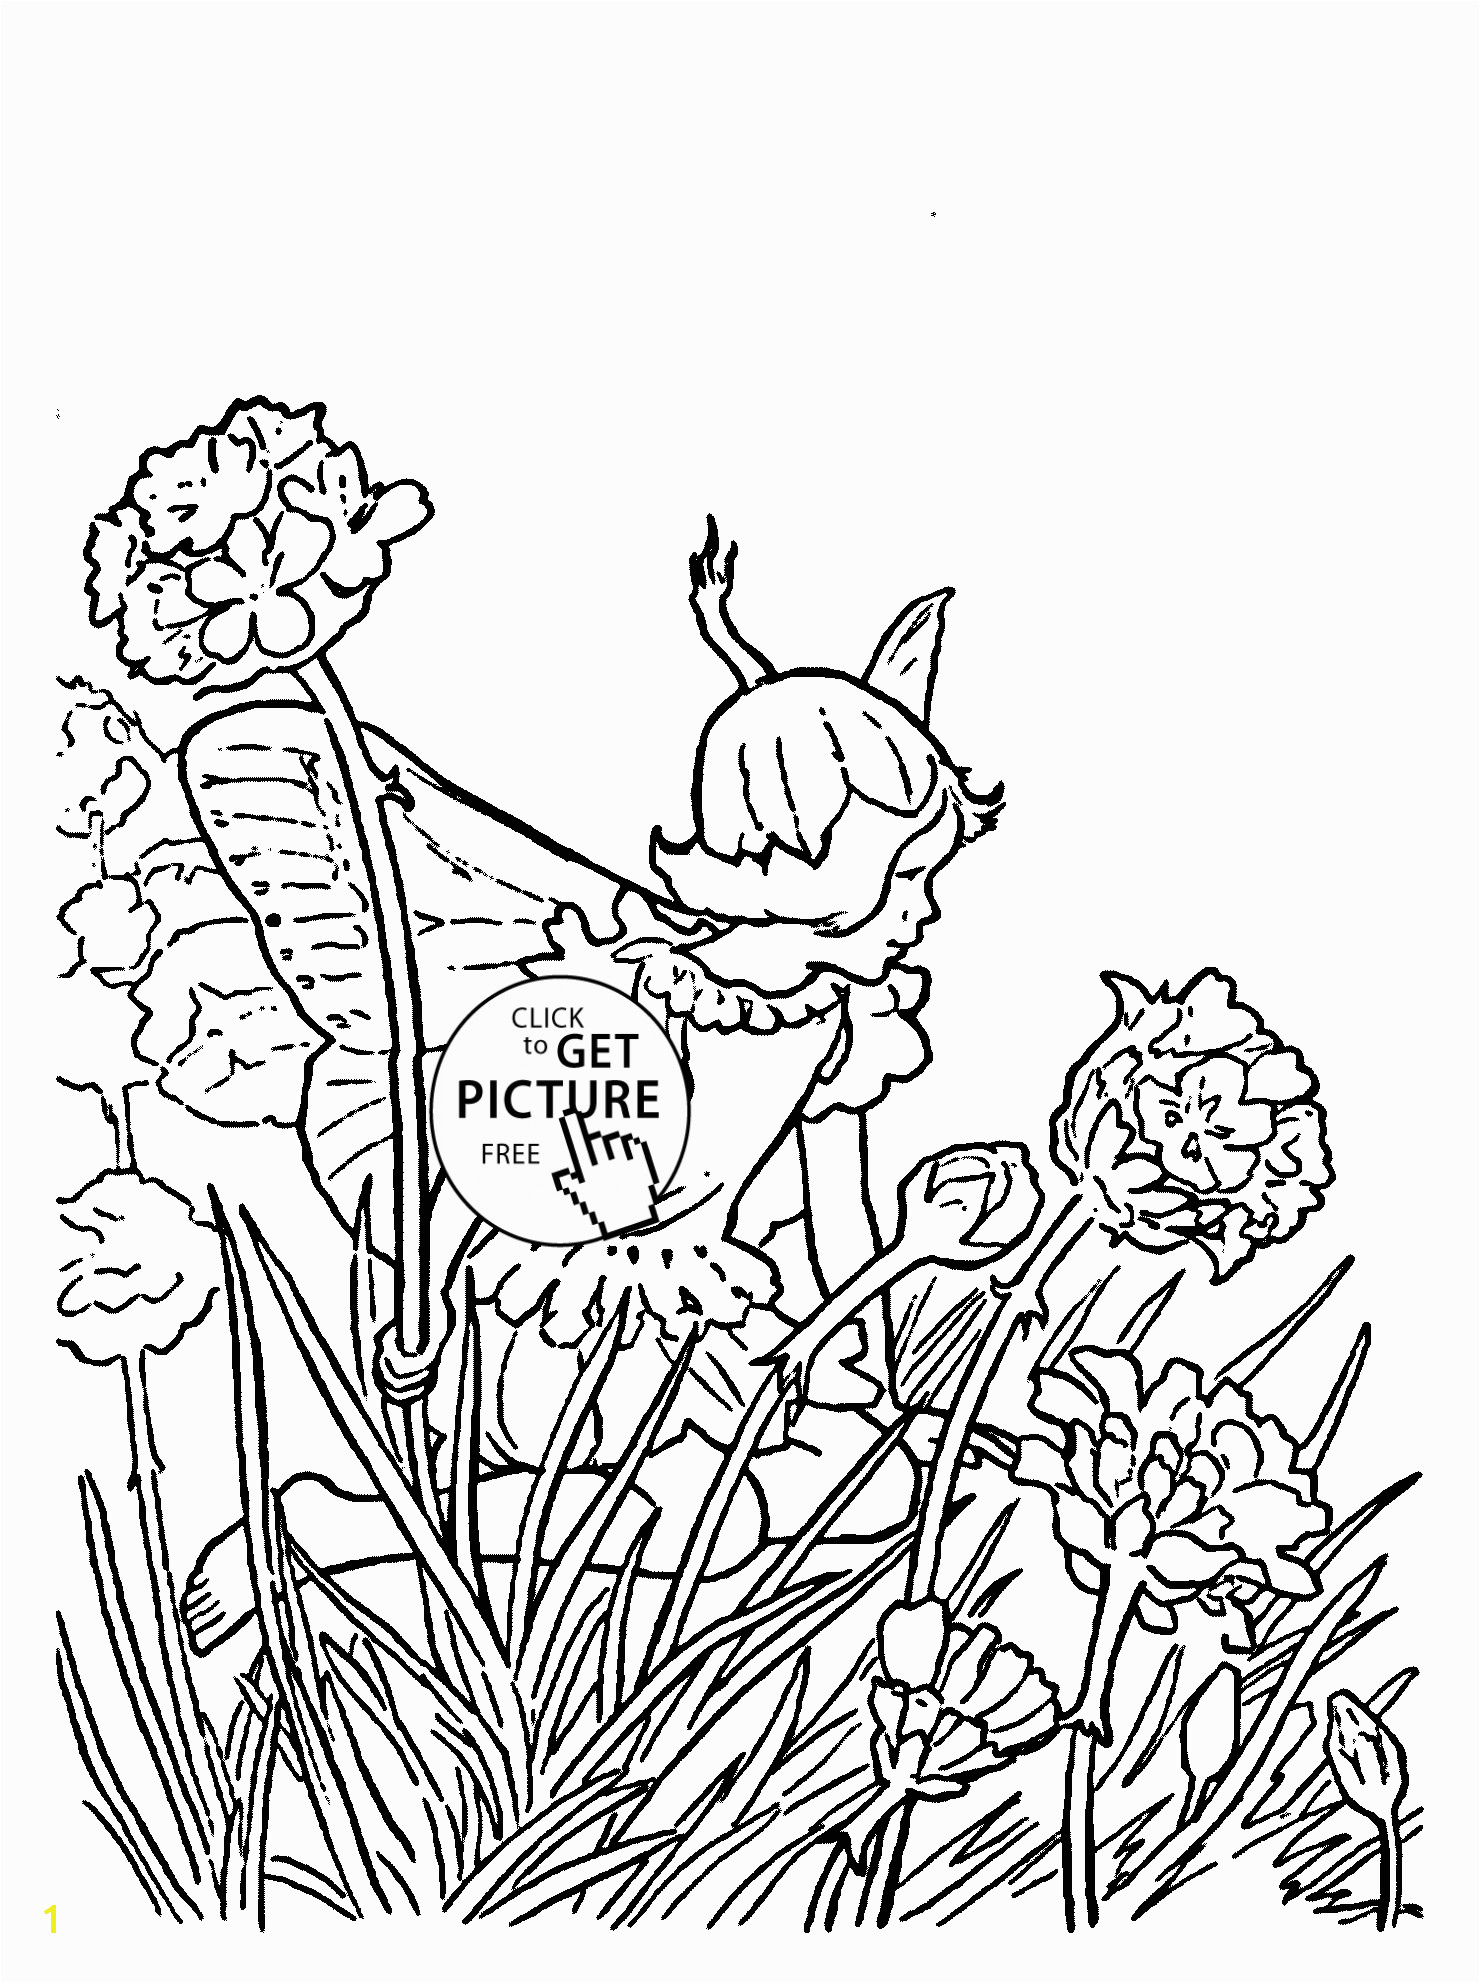 Free Fairy Coloring Pages for Adults to Print Flower Fairy Thrift Coloring Page for Kids for Girls Coloring Pages